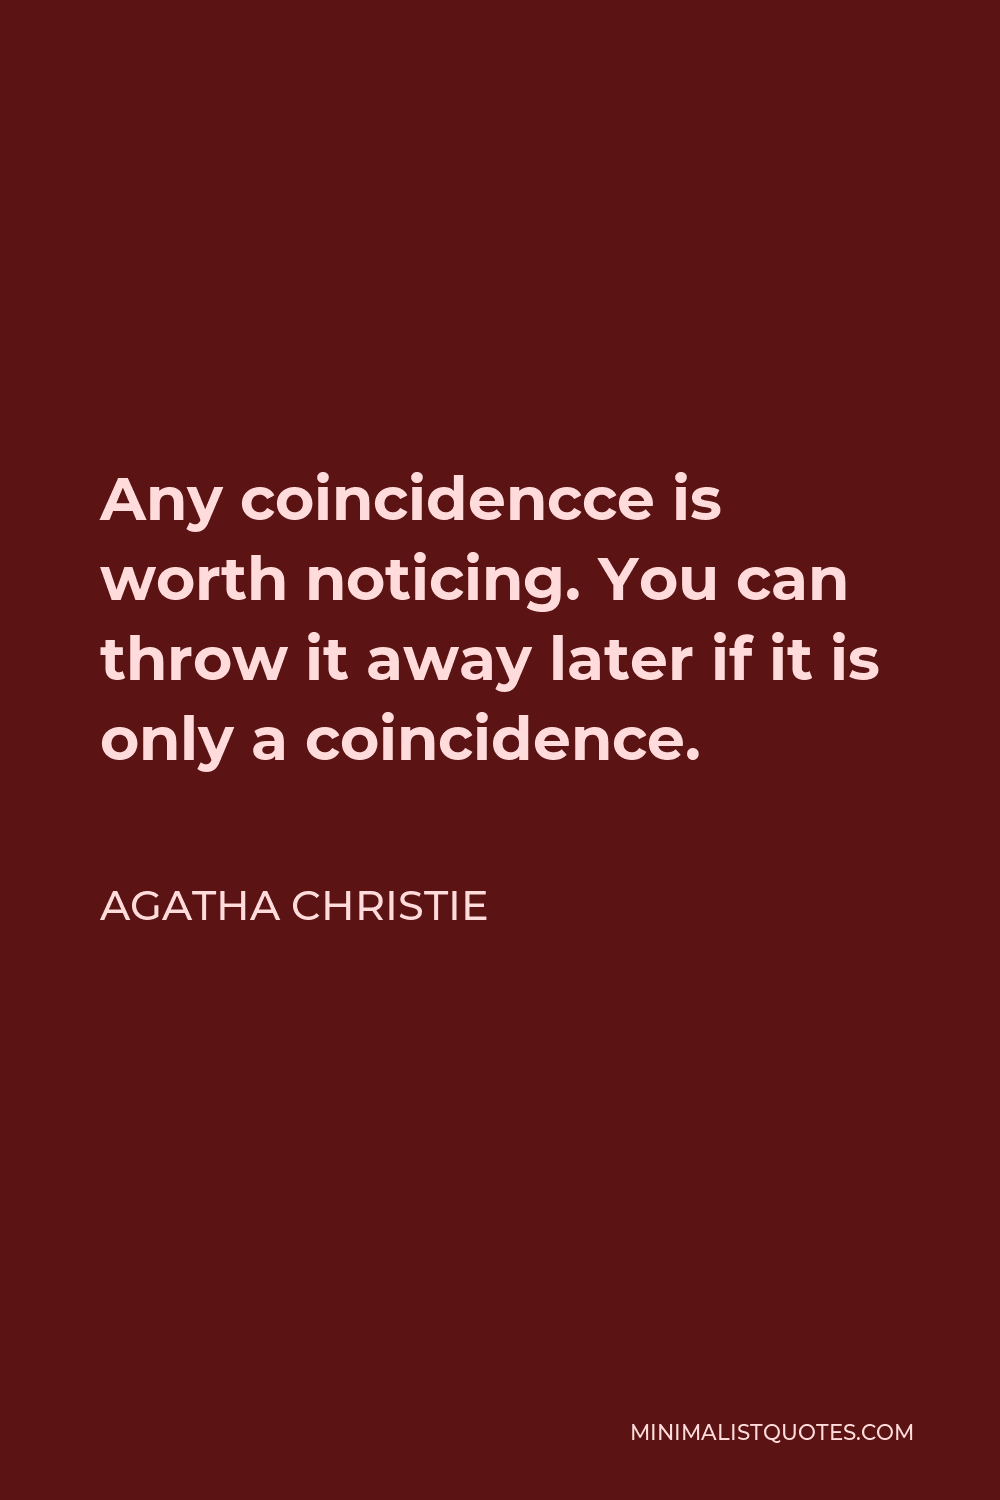 Agatha Christie Quote - Any coincidencce is worth noticing. You can throw it away later if it is only a coincidence.